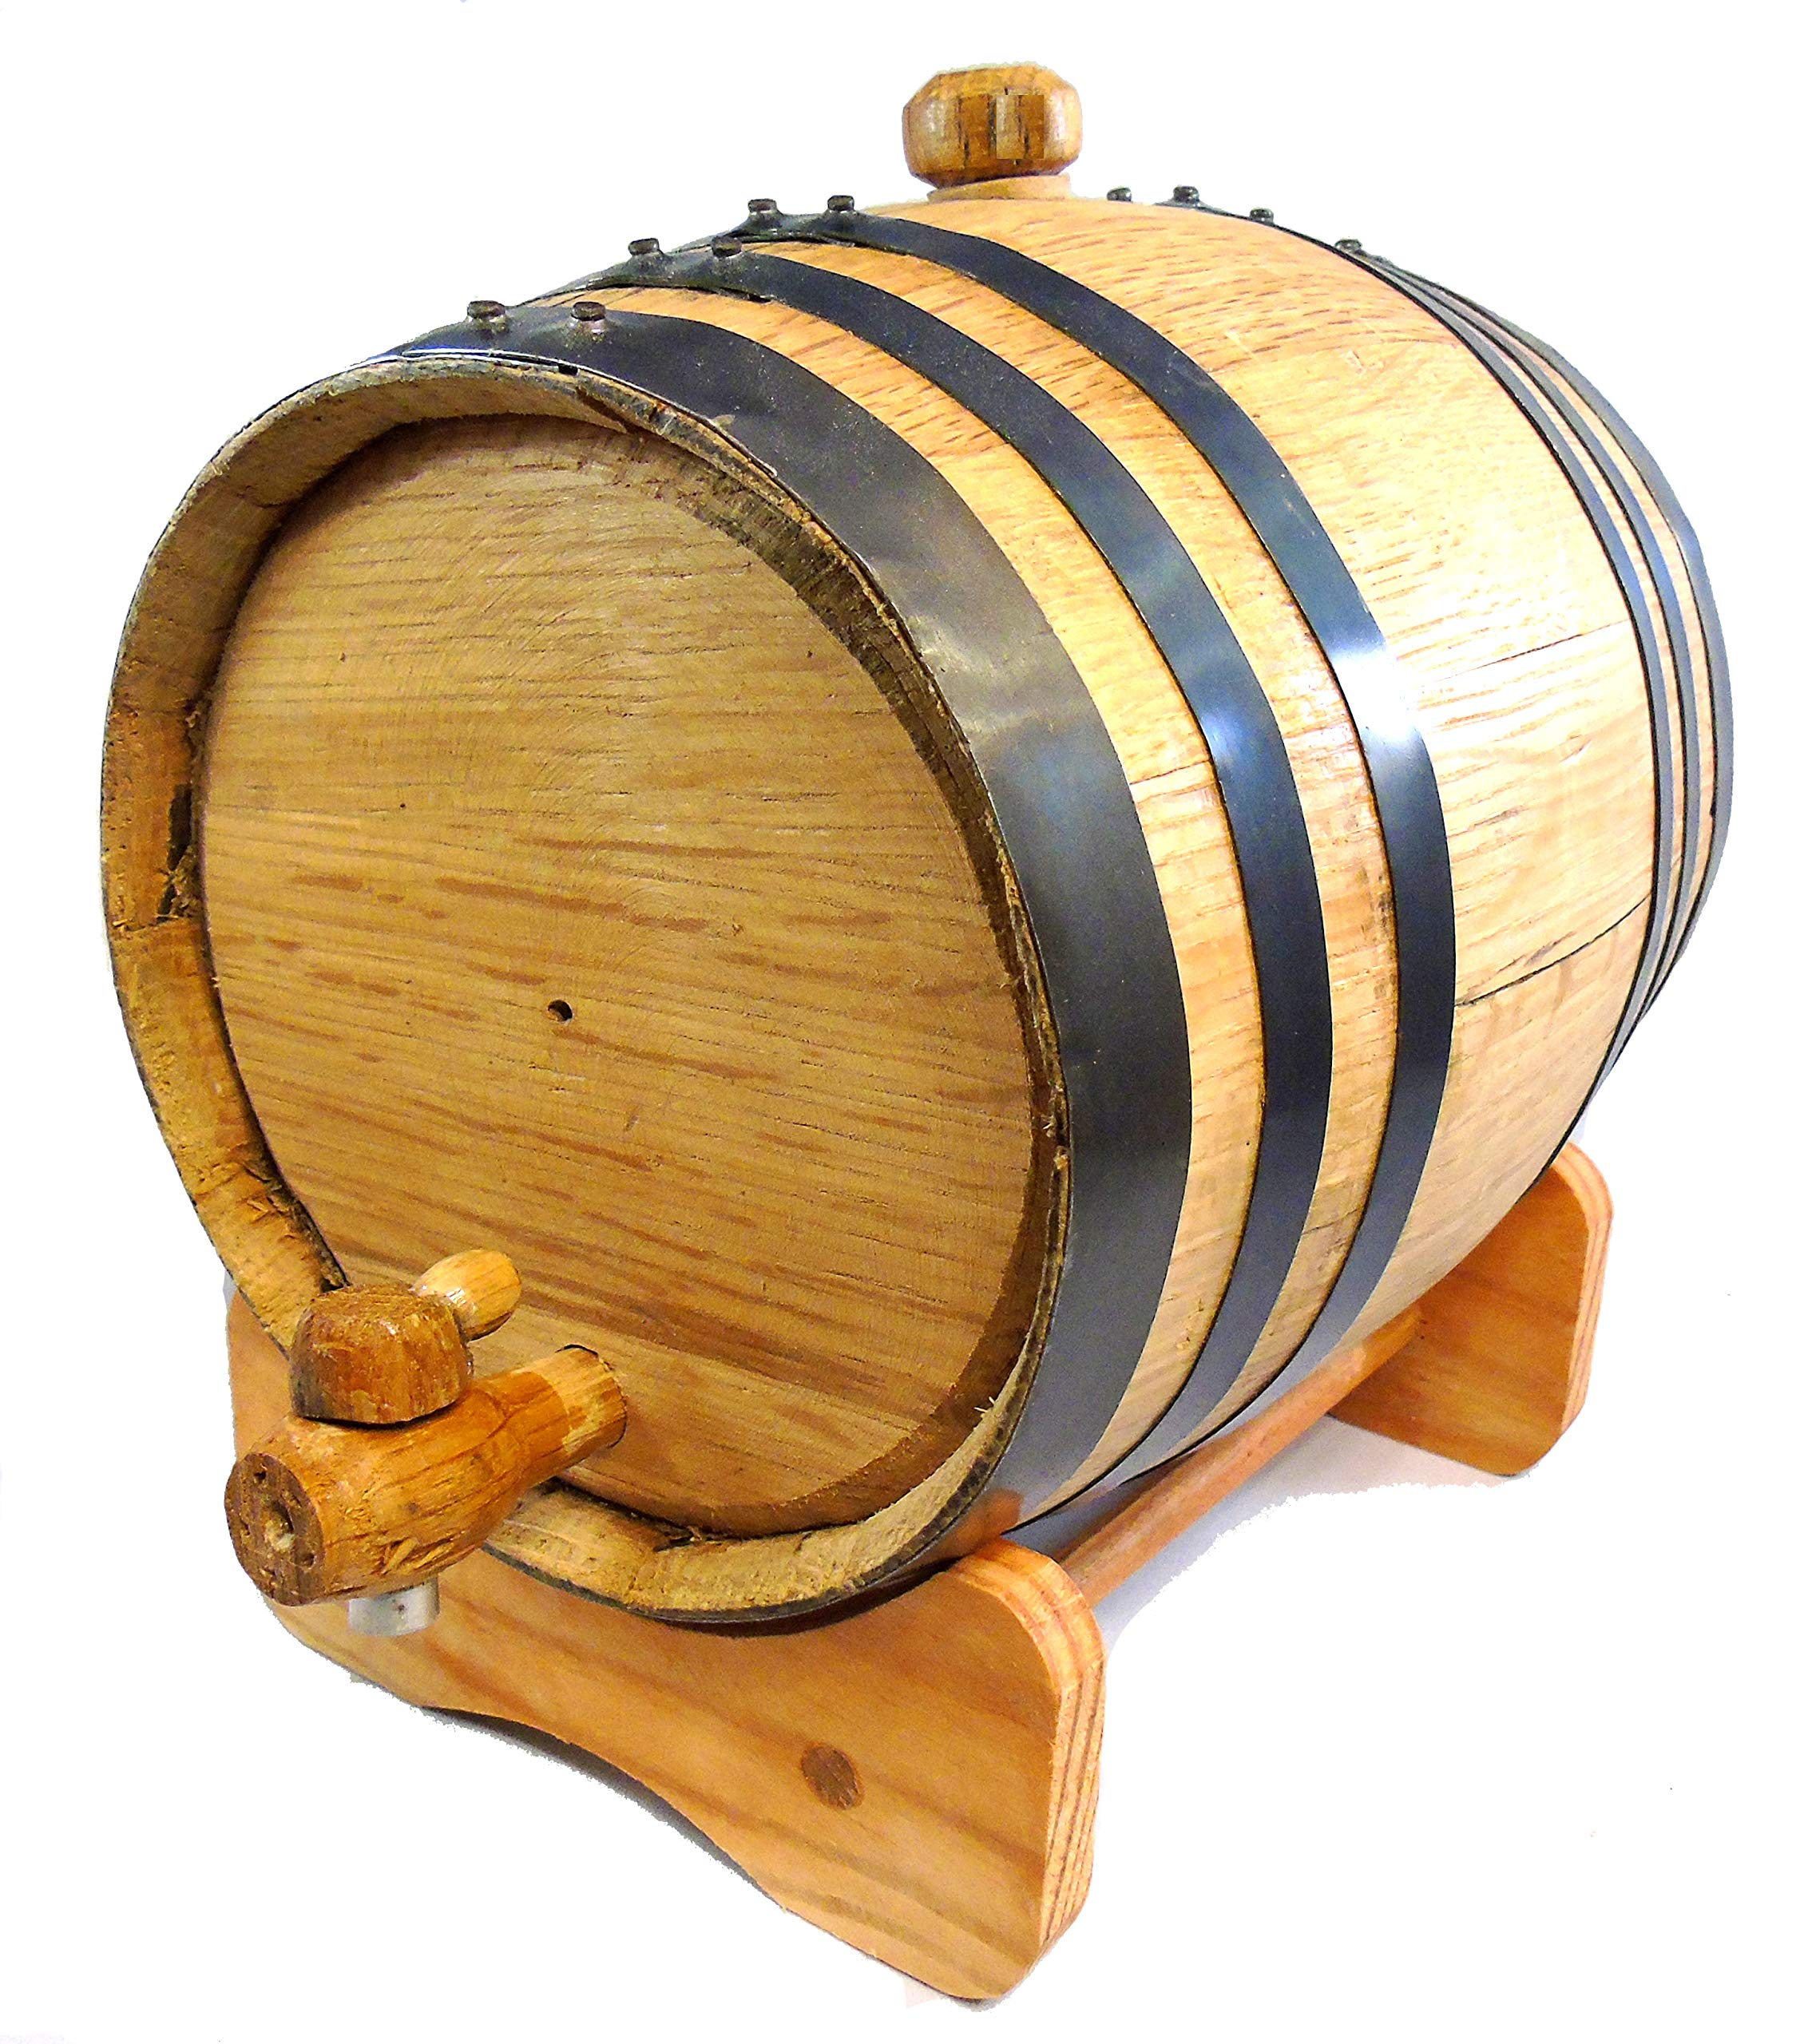 Premium Charred American Oak Aging Barrel - No Engraving (2 Liter) by Red Head Barrels